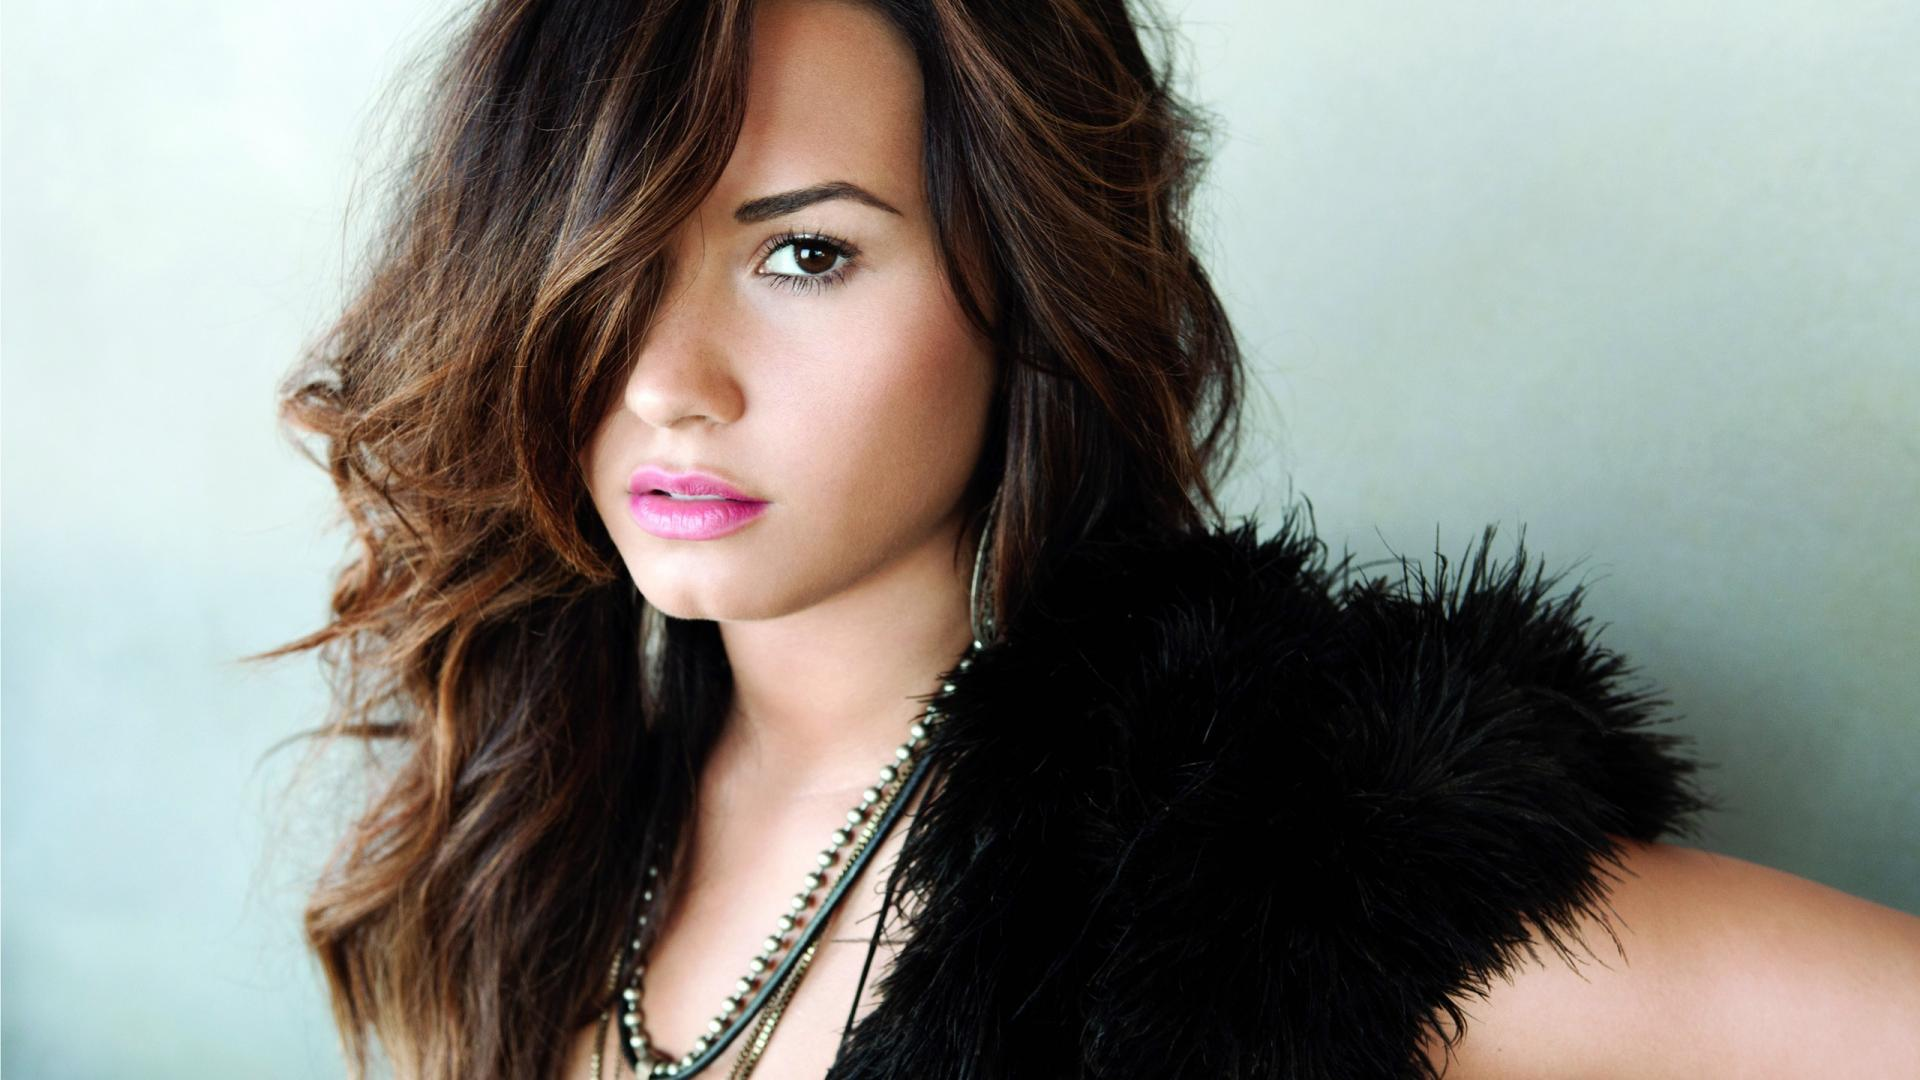 Demi Lovato Wallpapers HD 2015 - Wallpaper Cave